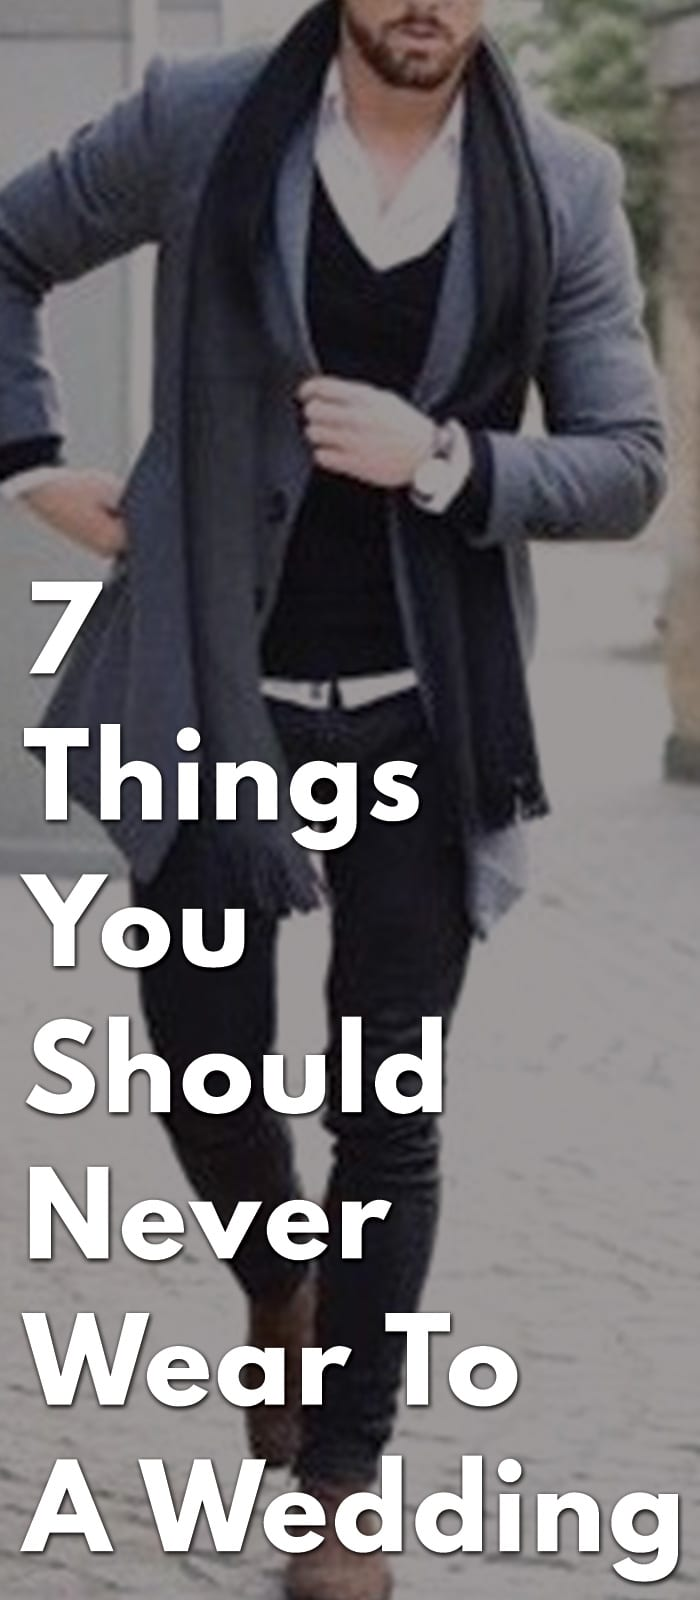 726a8e28f11 7 Things You Should Never Wear To A Wedding